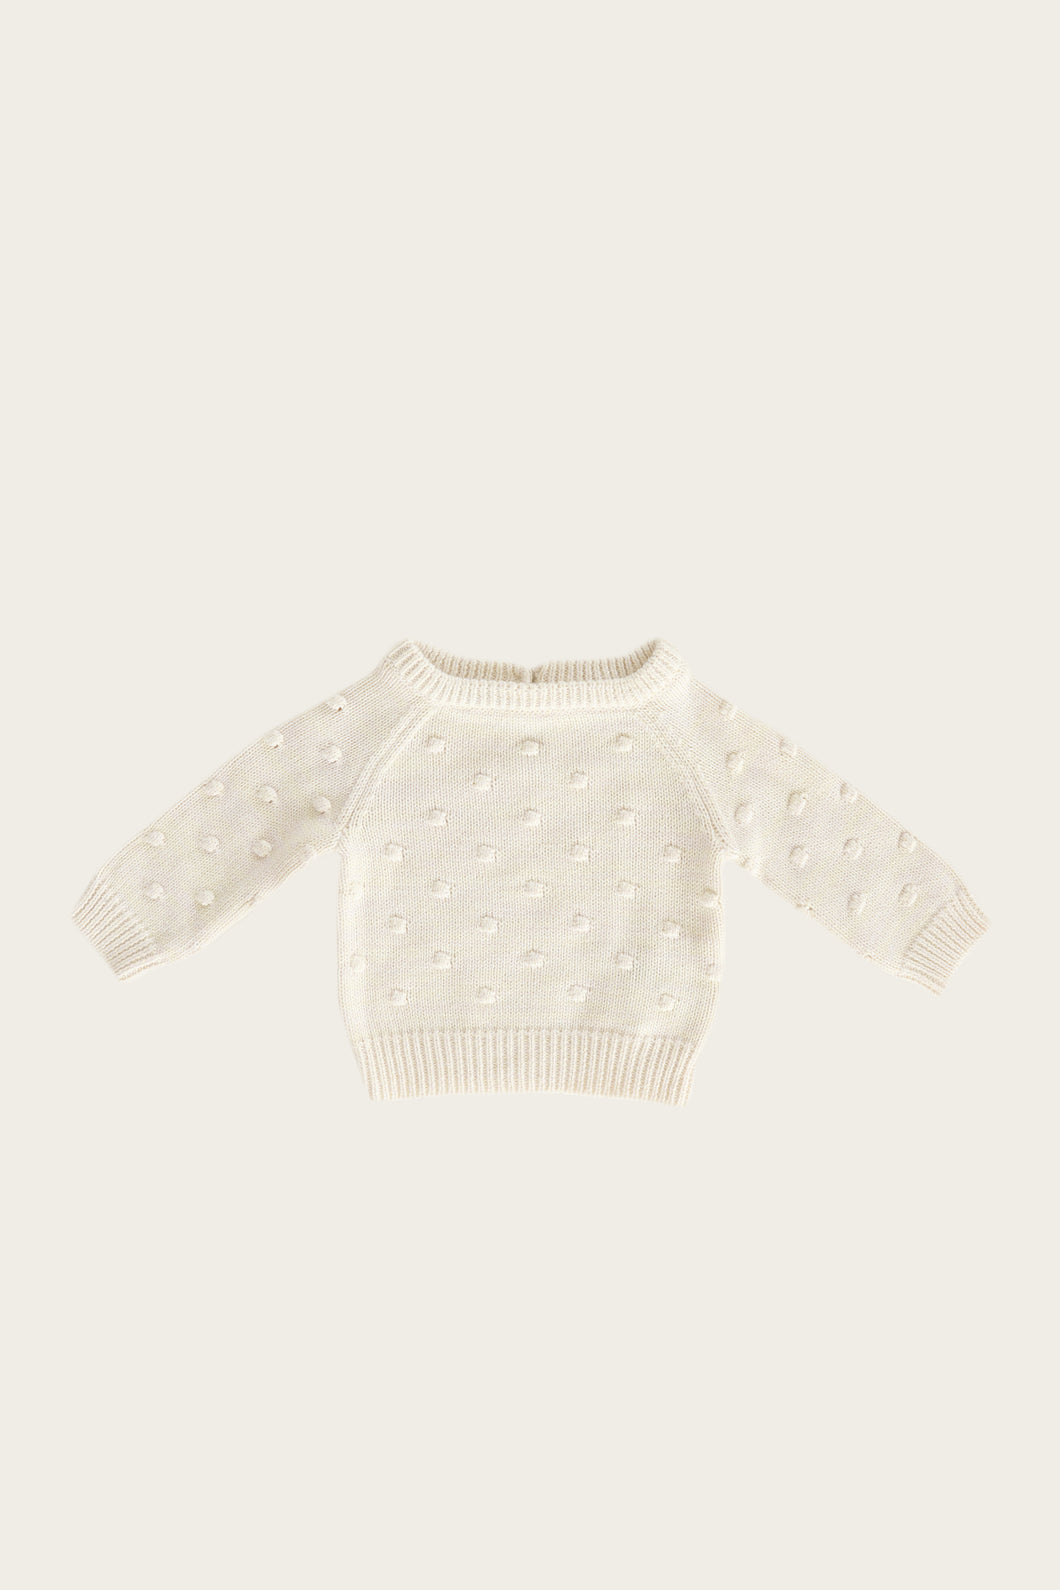 Dotty Knit - Fairy Dust